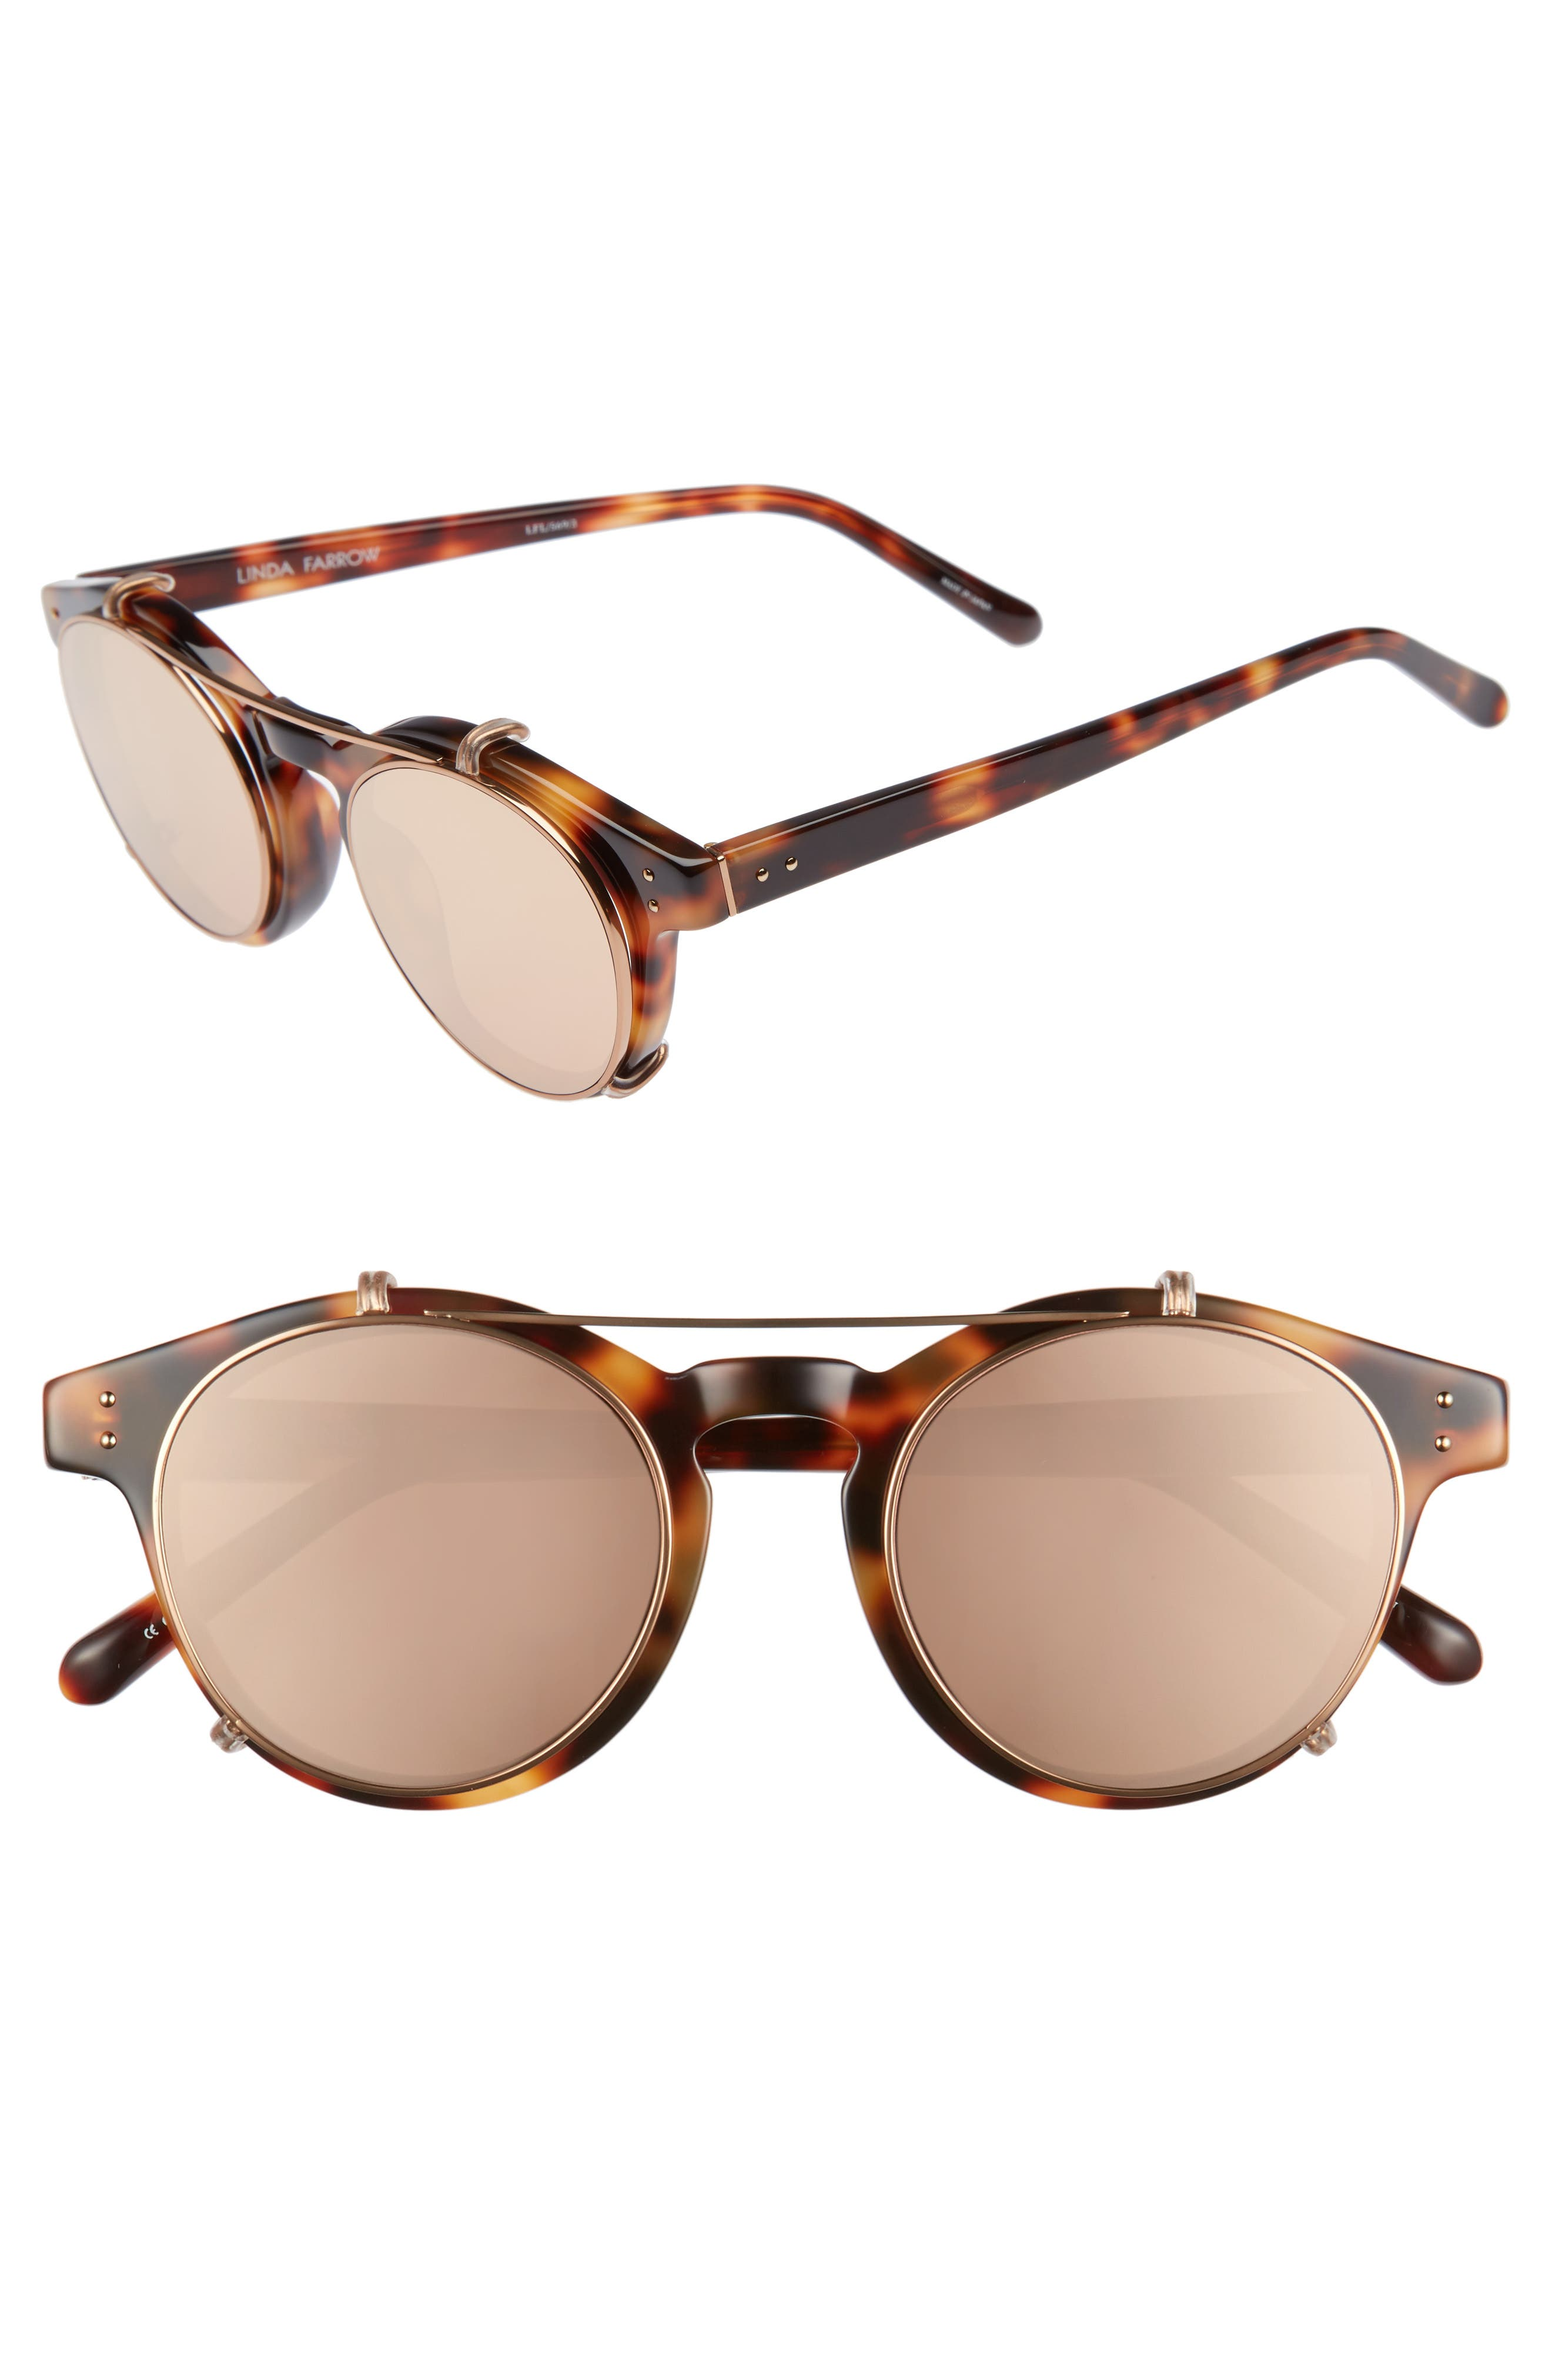 47mm Optical Glasses with Clip-On 18 Karat Rose Gold Trim Sunglasses,                             Main thumbnail 2, color,